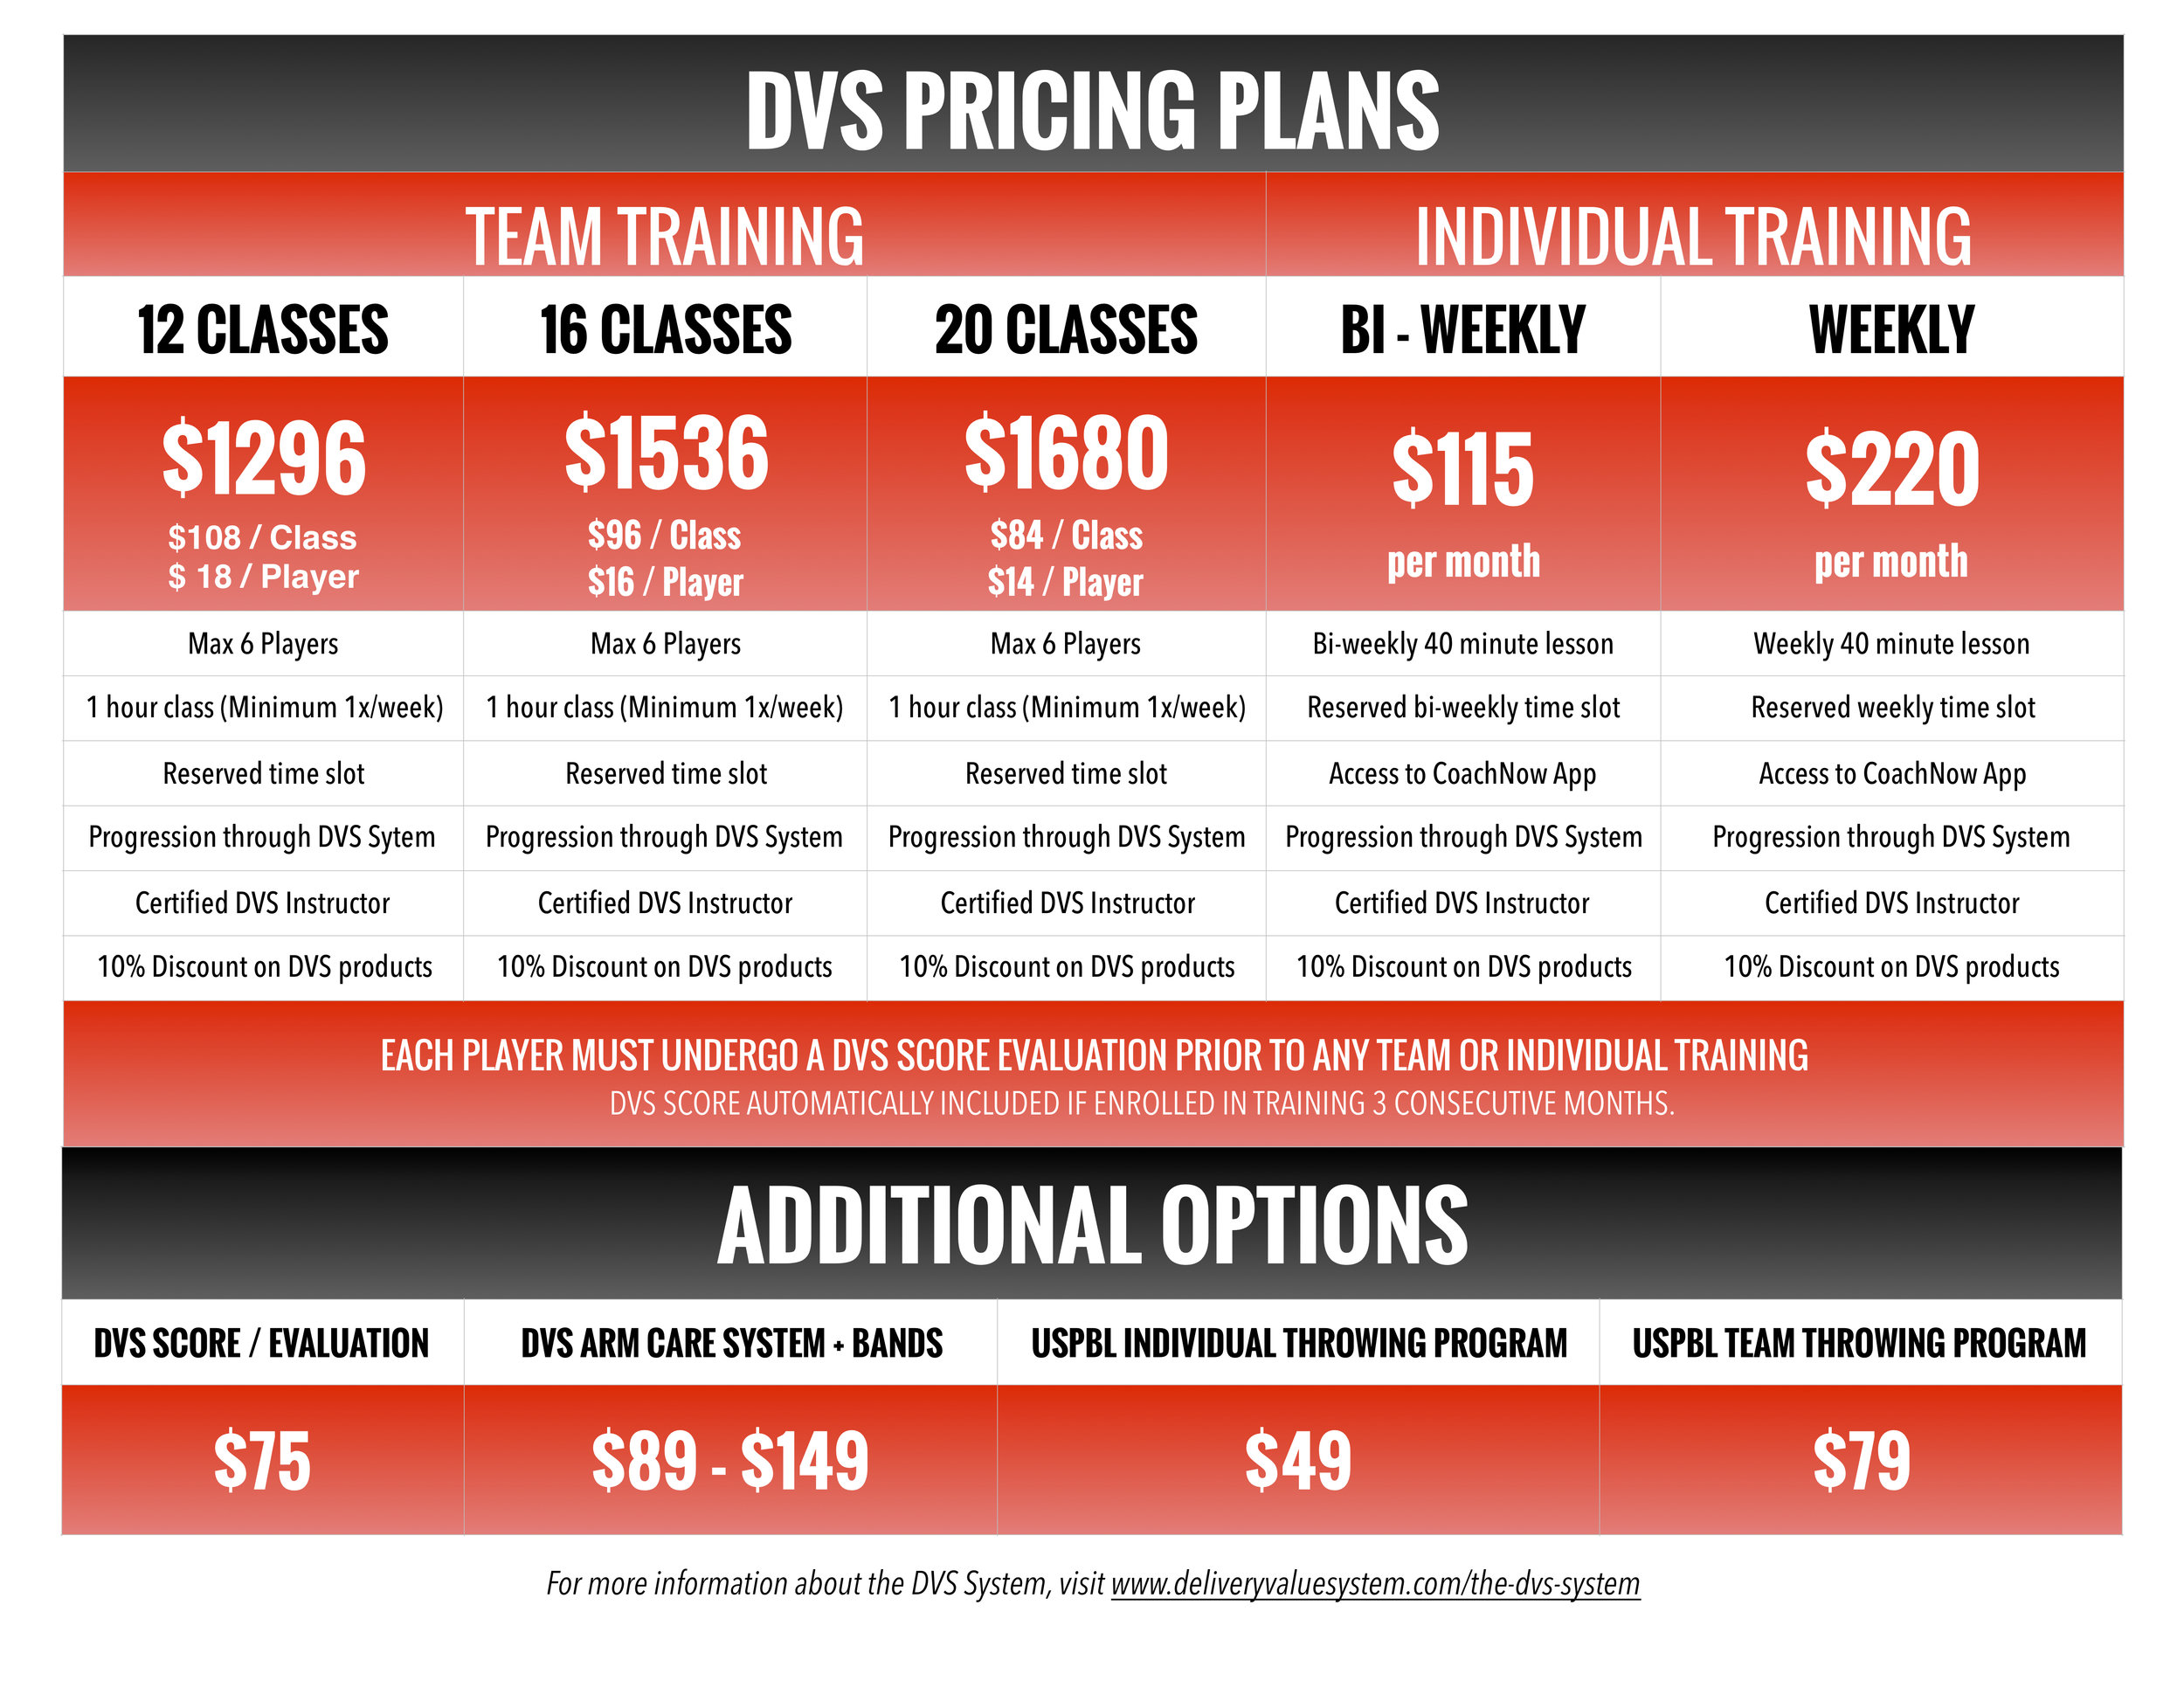 Pricing Plans - We have tailored pricing plans/options to suit every type of player and budget. Our recommendations are built around a client's DVS Score, age, current level of play, and goals/expectations.